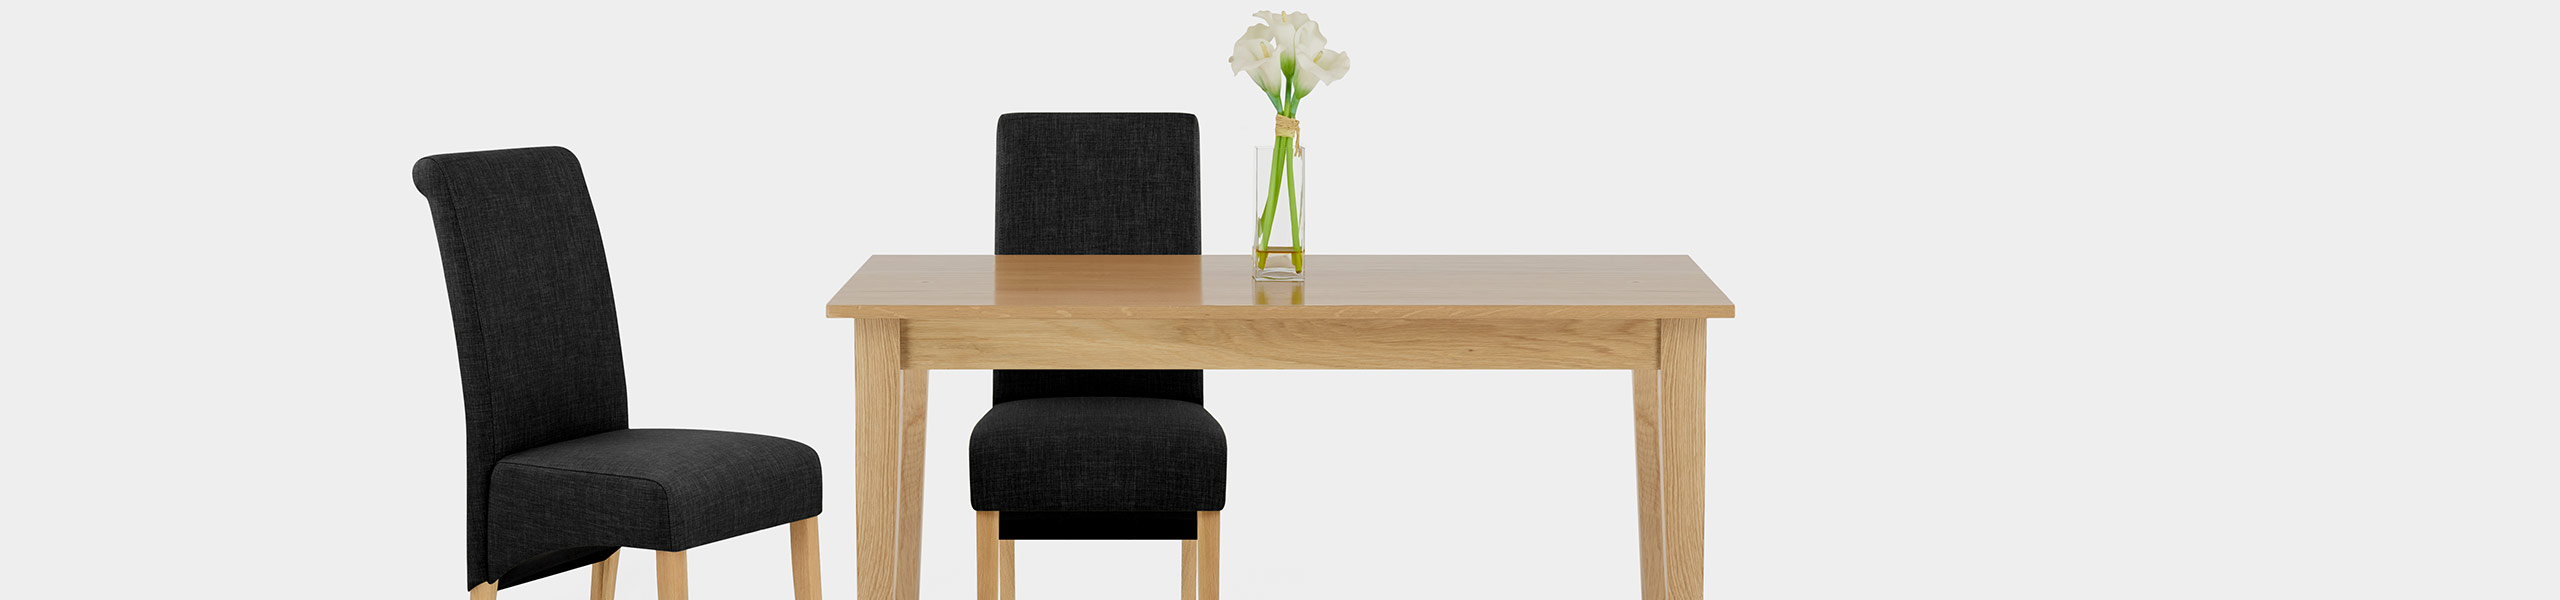 Carlo Oak Chair Charcoal Fabric Video Banner